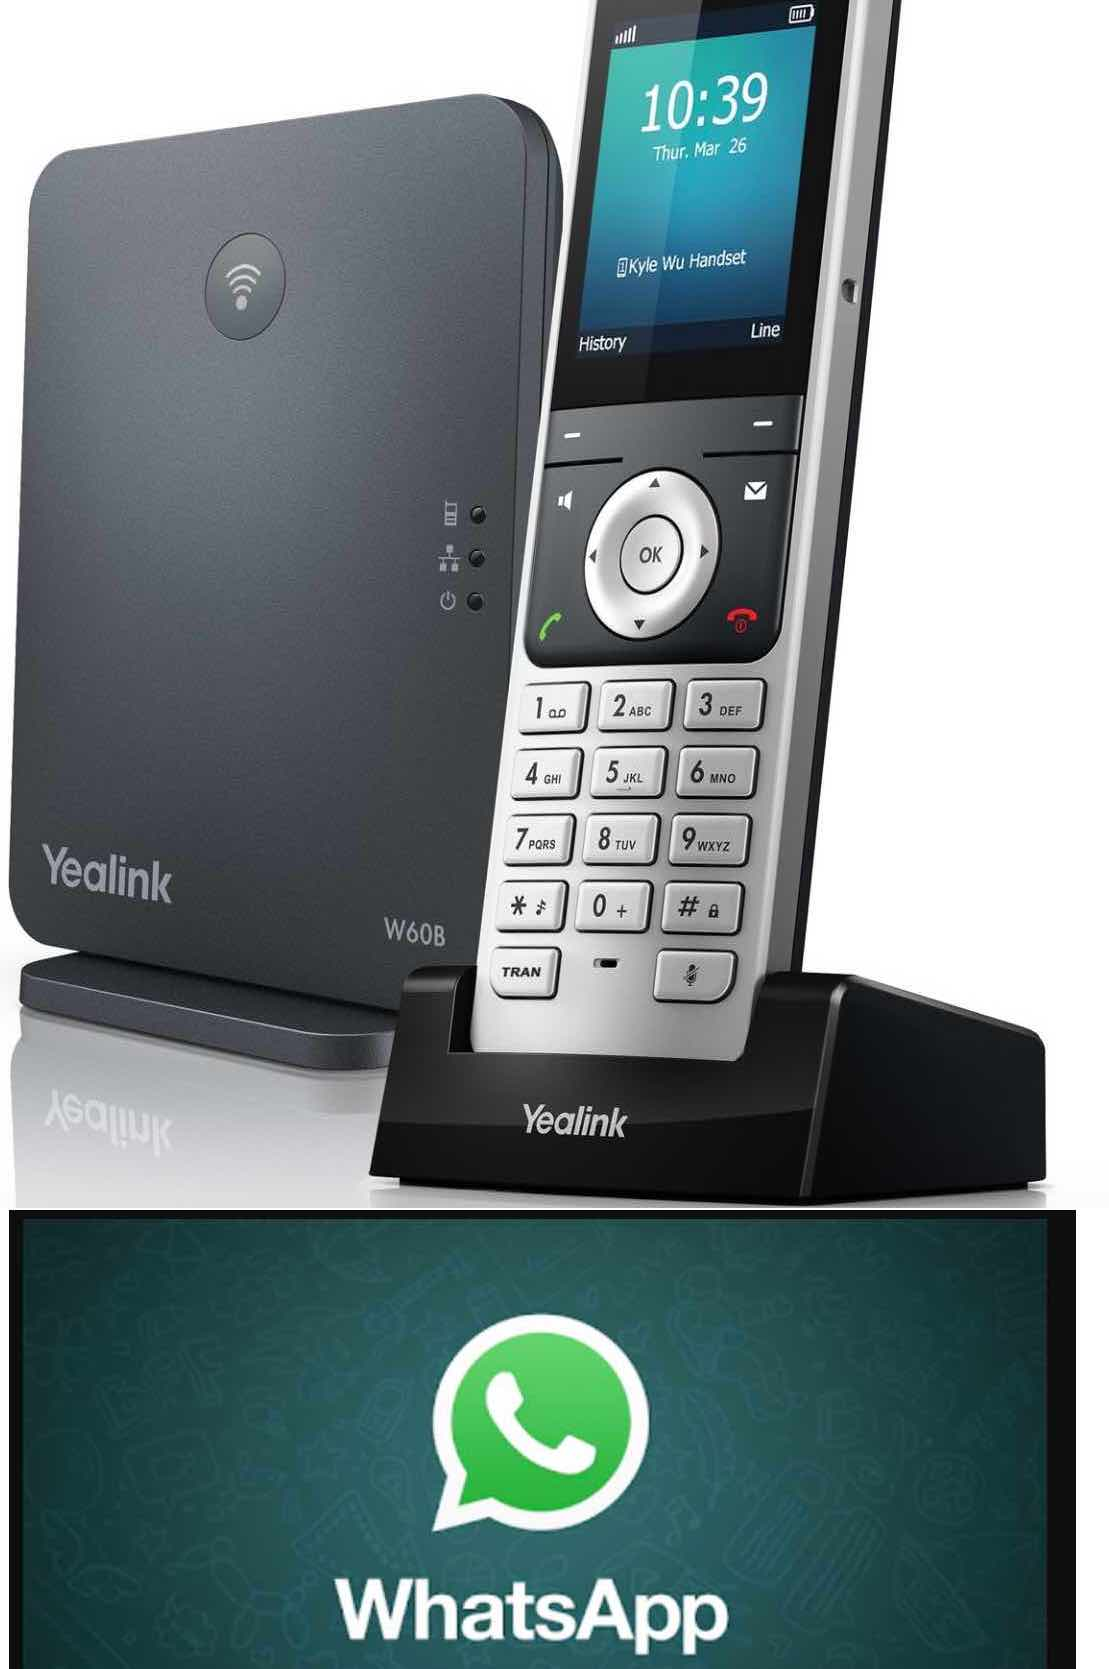 How One Can Use WhatsApp with a Virtual Phone Number